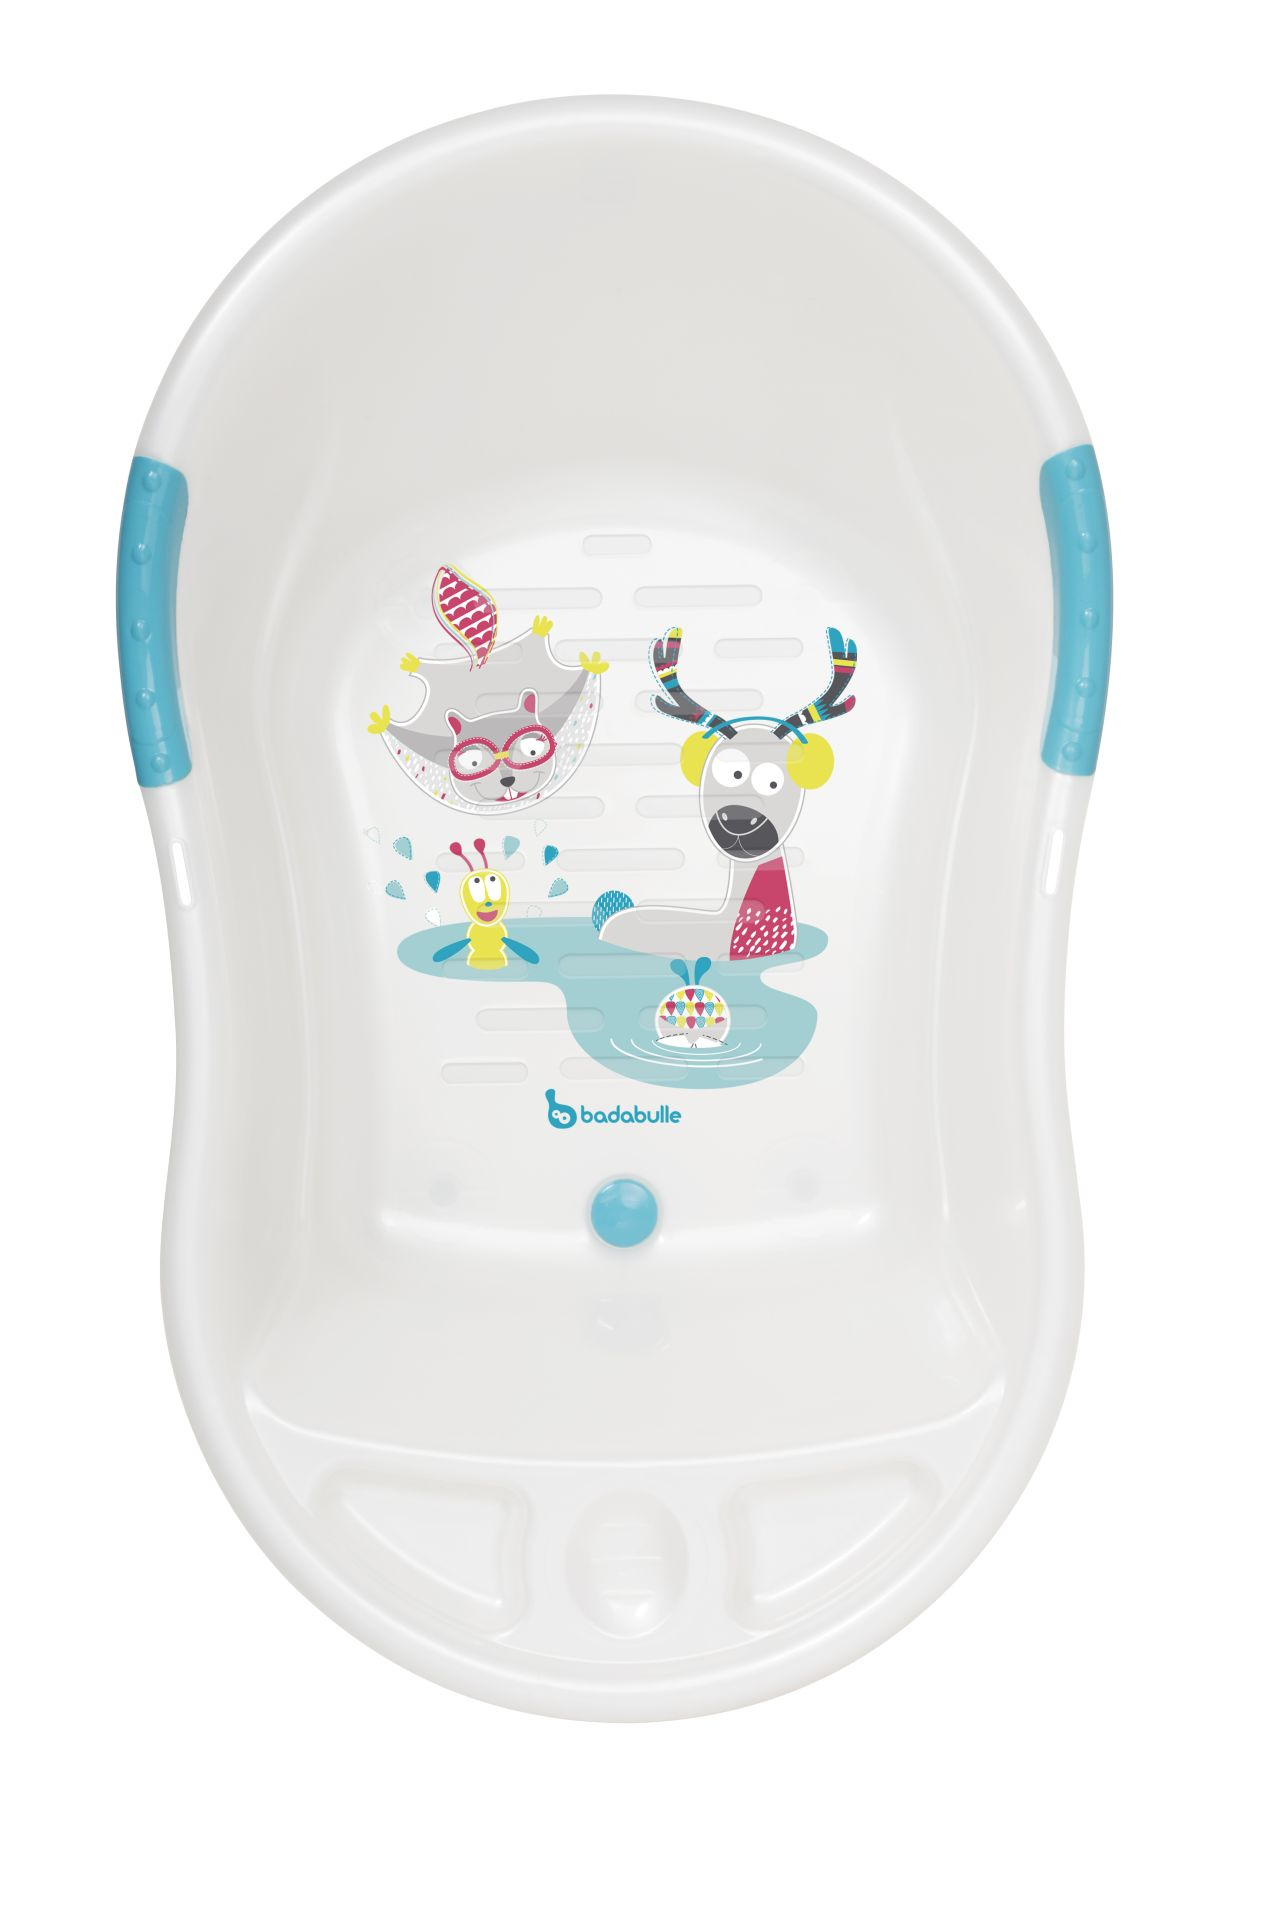 badabulle baby bath tub mountain animals white buy at kidsroom baby care. Black Bedroom Furniture Sets. Home Design Ideas